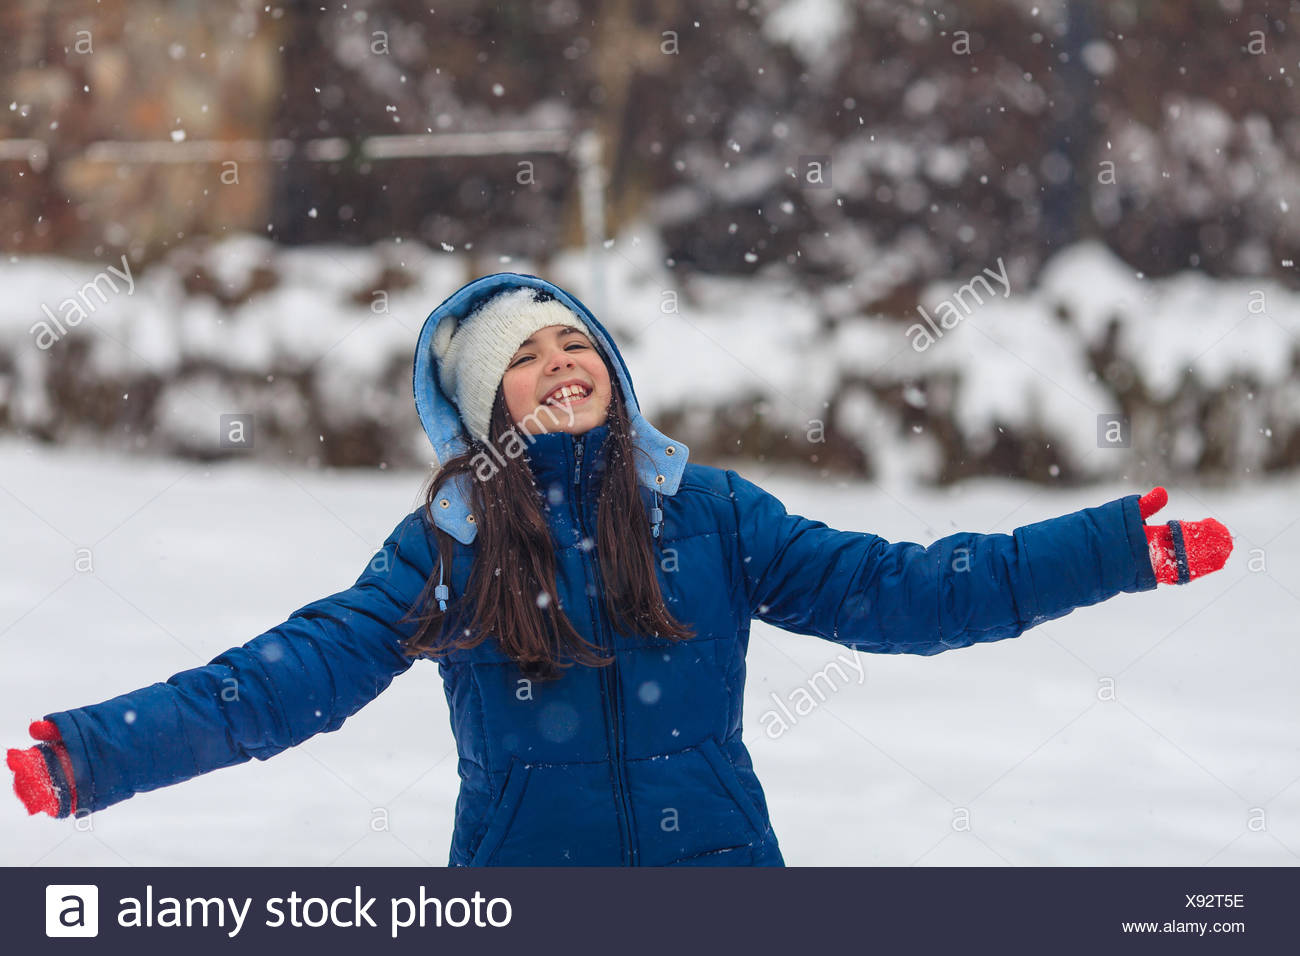 Girl with outstretched arms playing in the snow - Stock Image